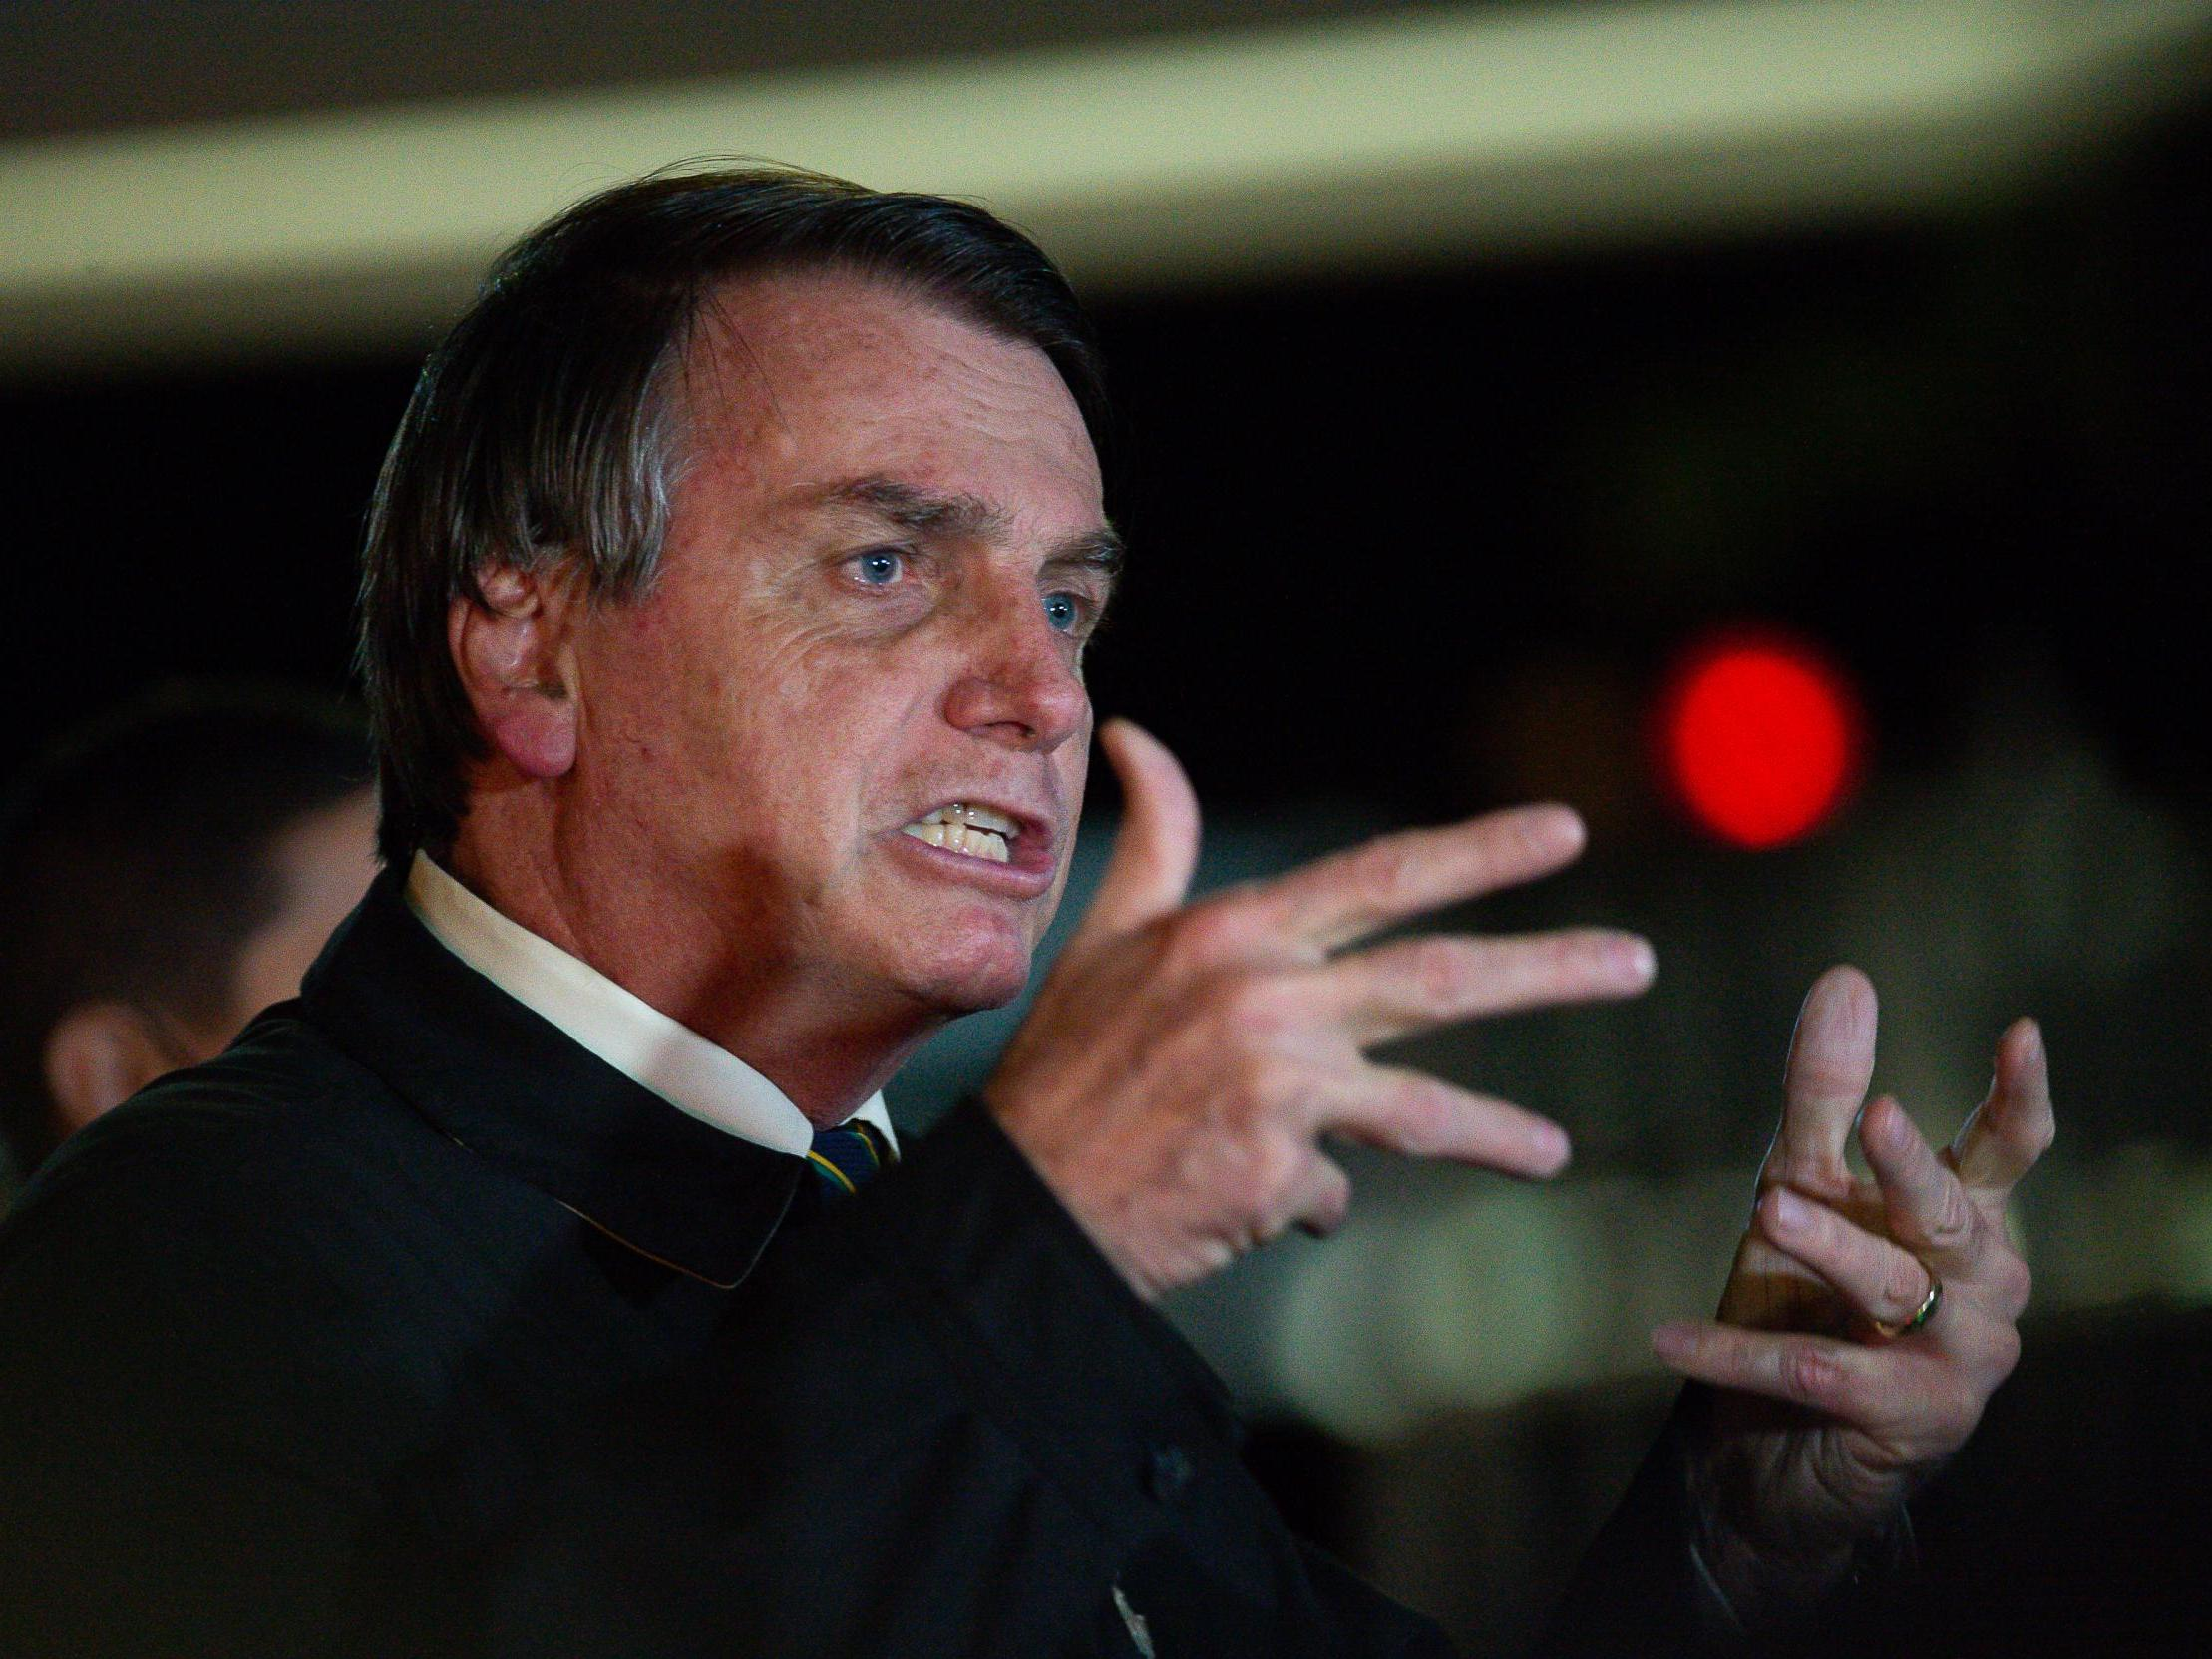 Brazil's political rivals unite to oppose Bolsonaro and 'defend life, freedom and democracy' amid spiralling coronavirus crisis